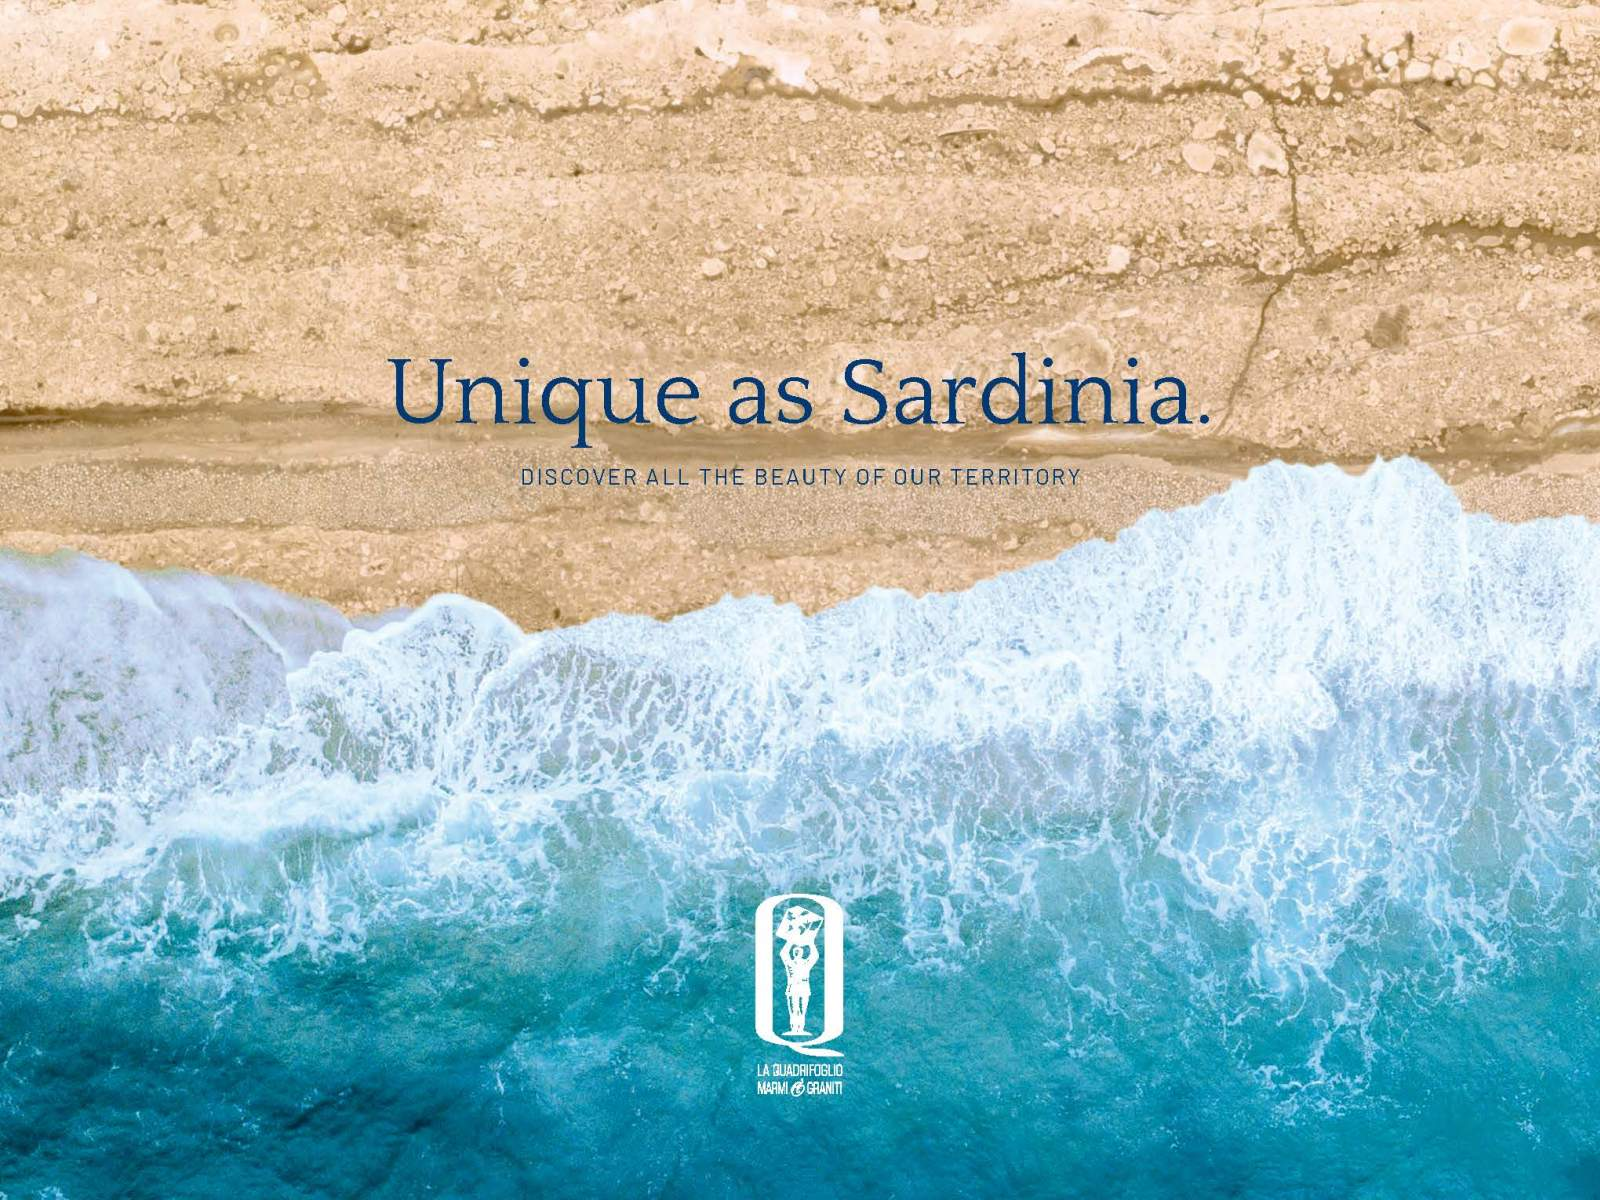 Unique as Sardinia